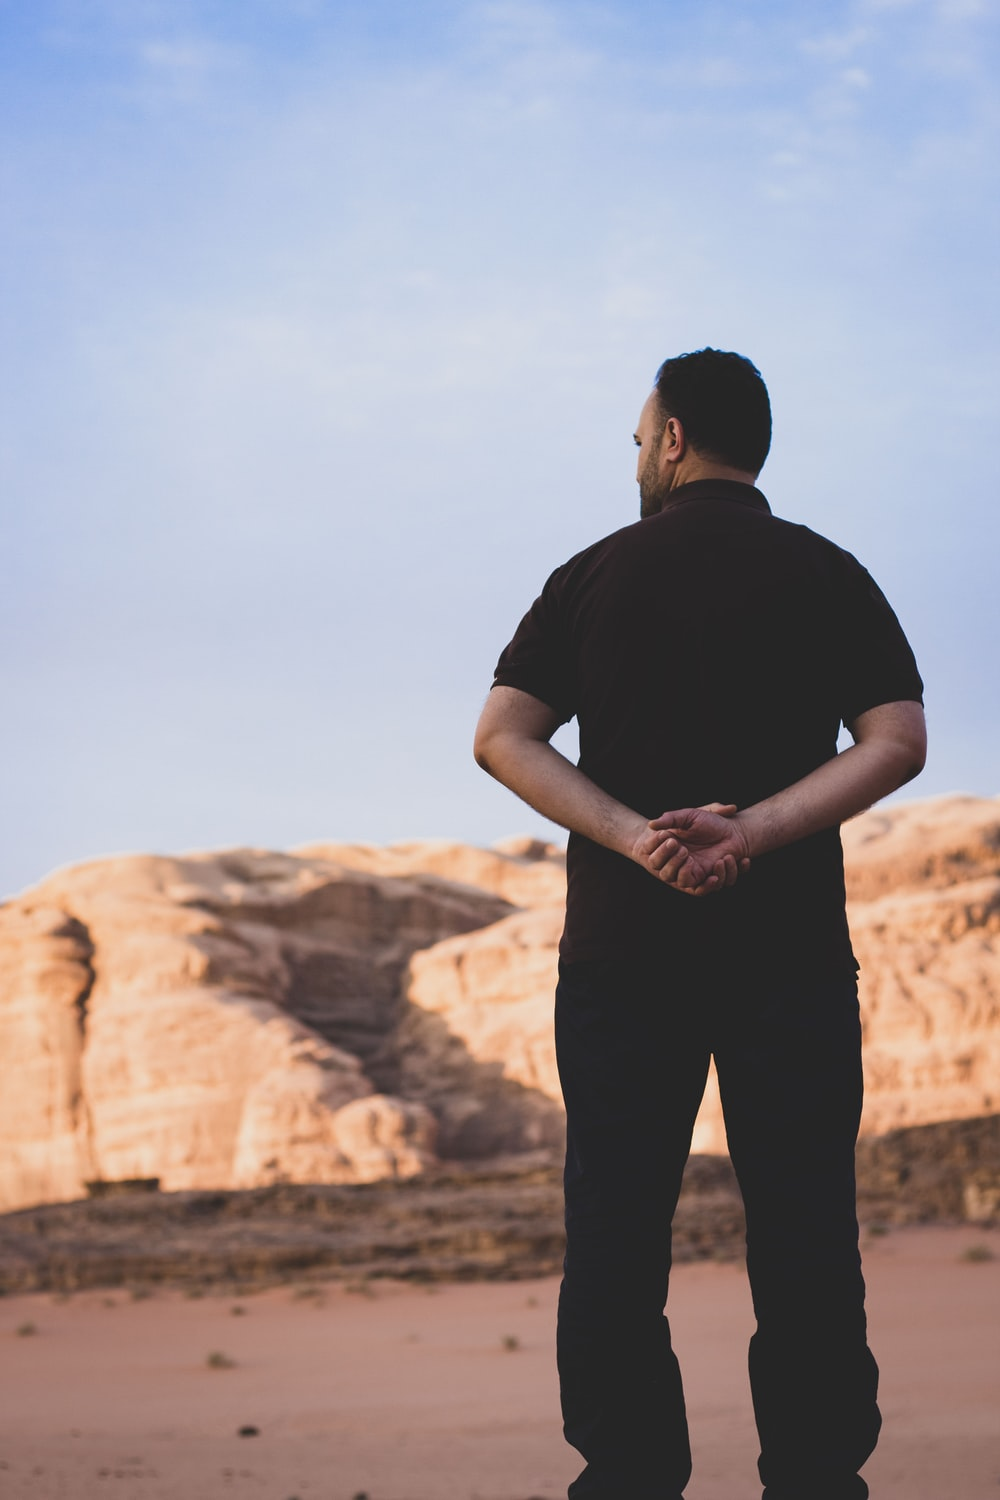 man in black t-shirt standing on brown rock formation during daytime